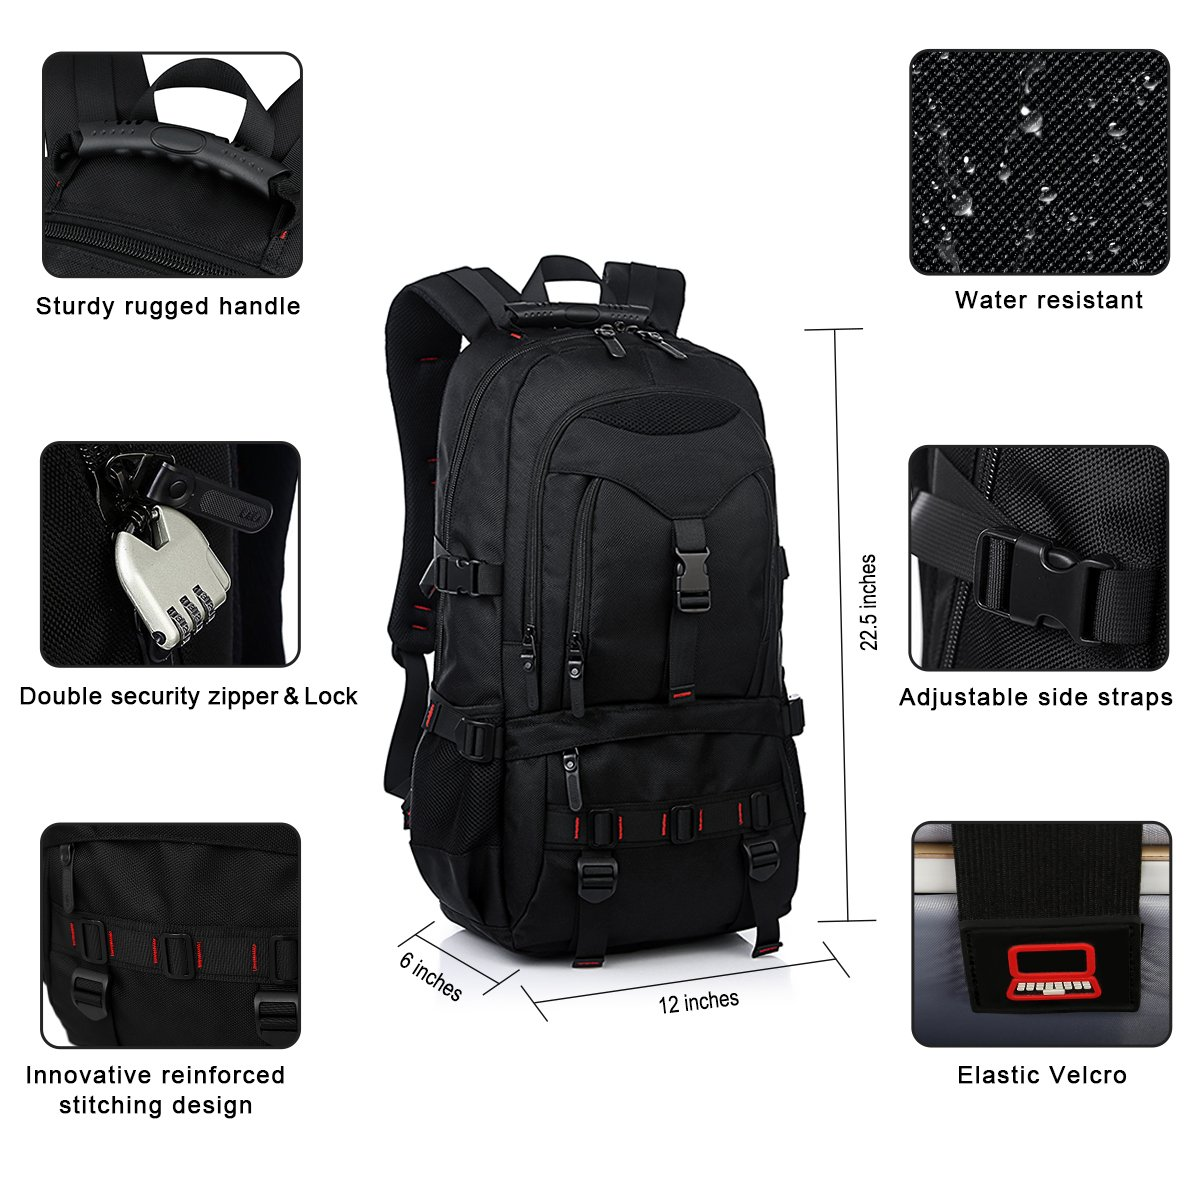 Fashion Laptop Backpack Contains Multi-Function Pockets, Tocode Durable Travel Backpack with USB Charging Port Stylish Anti-Theft School Bag Fits 17.3 Inch Laptop Comfort Pack for Women & Men–Black I by Tocode (Image #5)